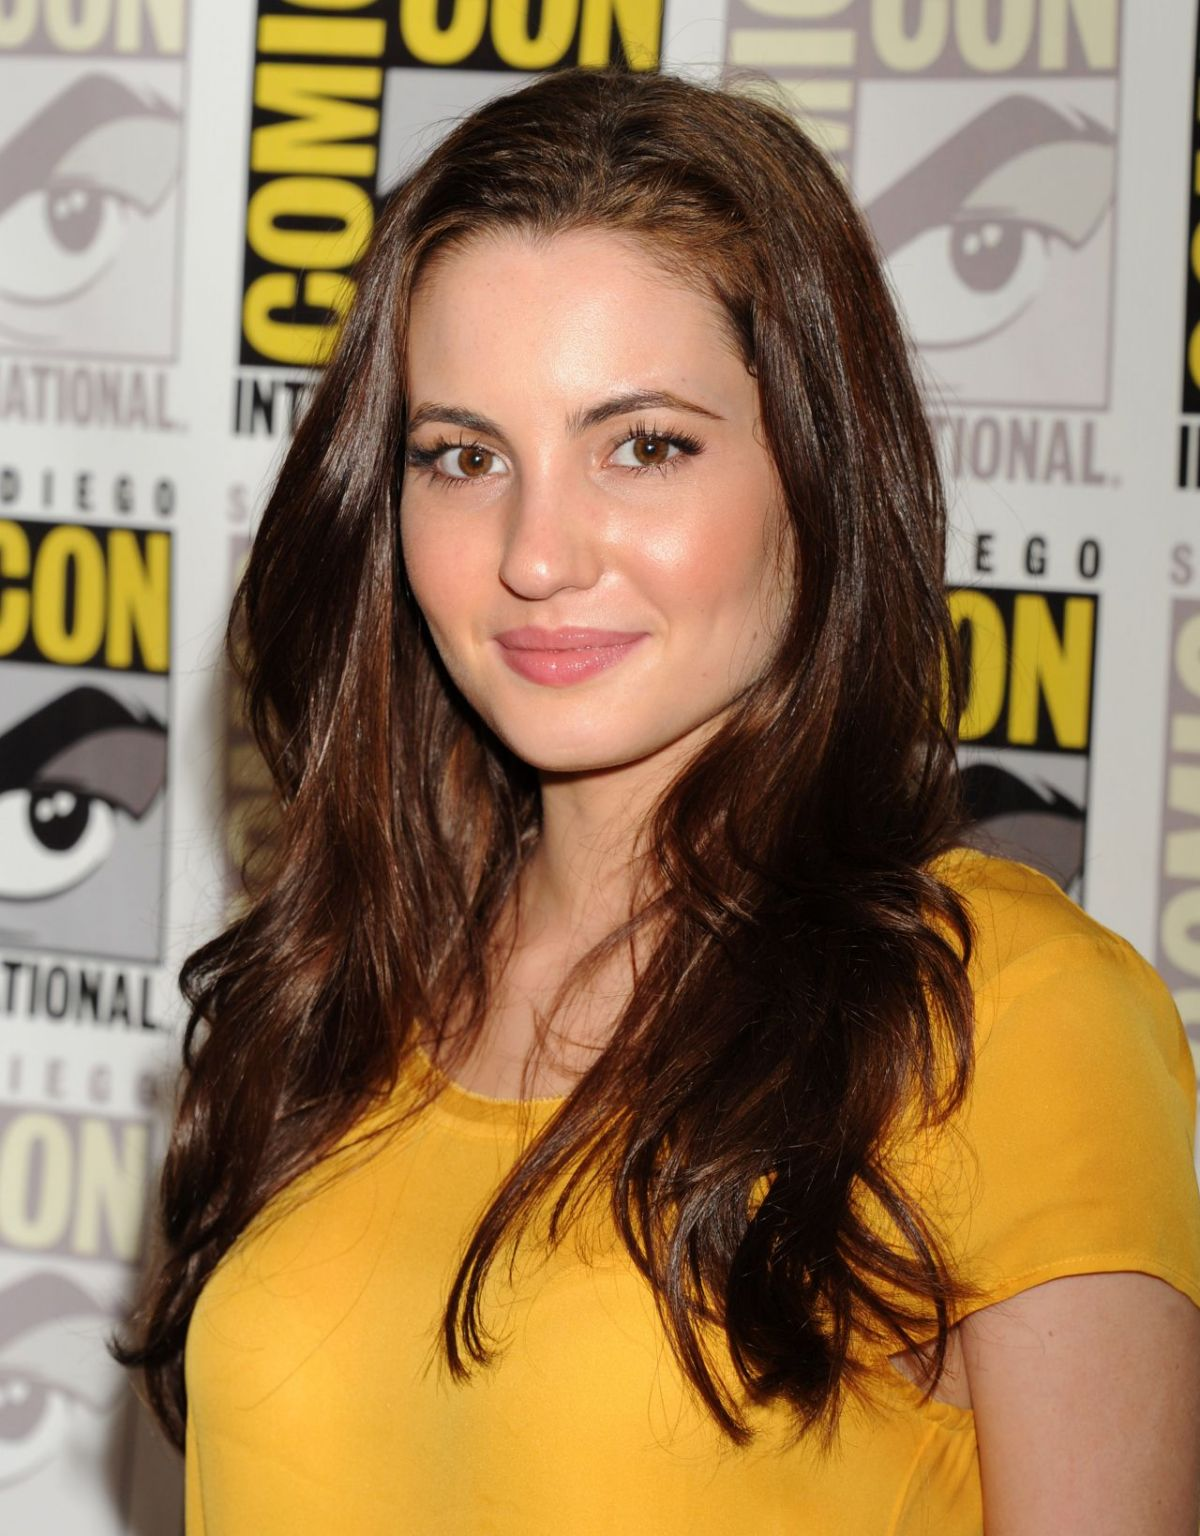 IVANA BAQUERO at The Shannara Chronicles Press Room at Comic-con International in San Diego 07/10/2015